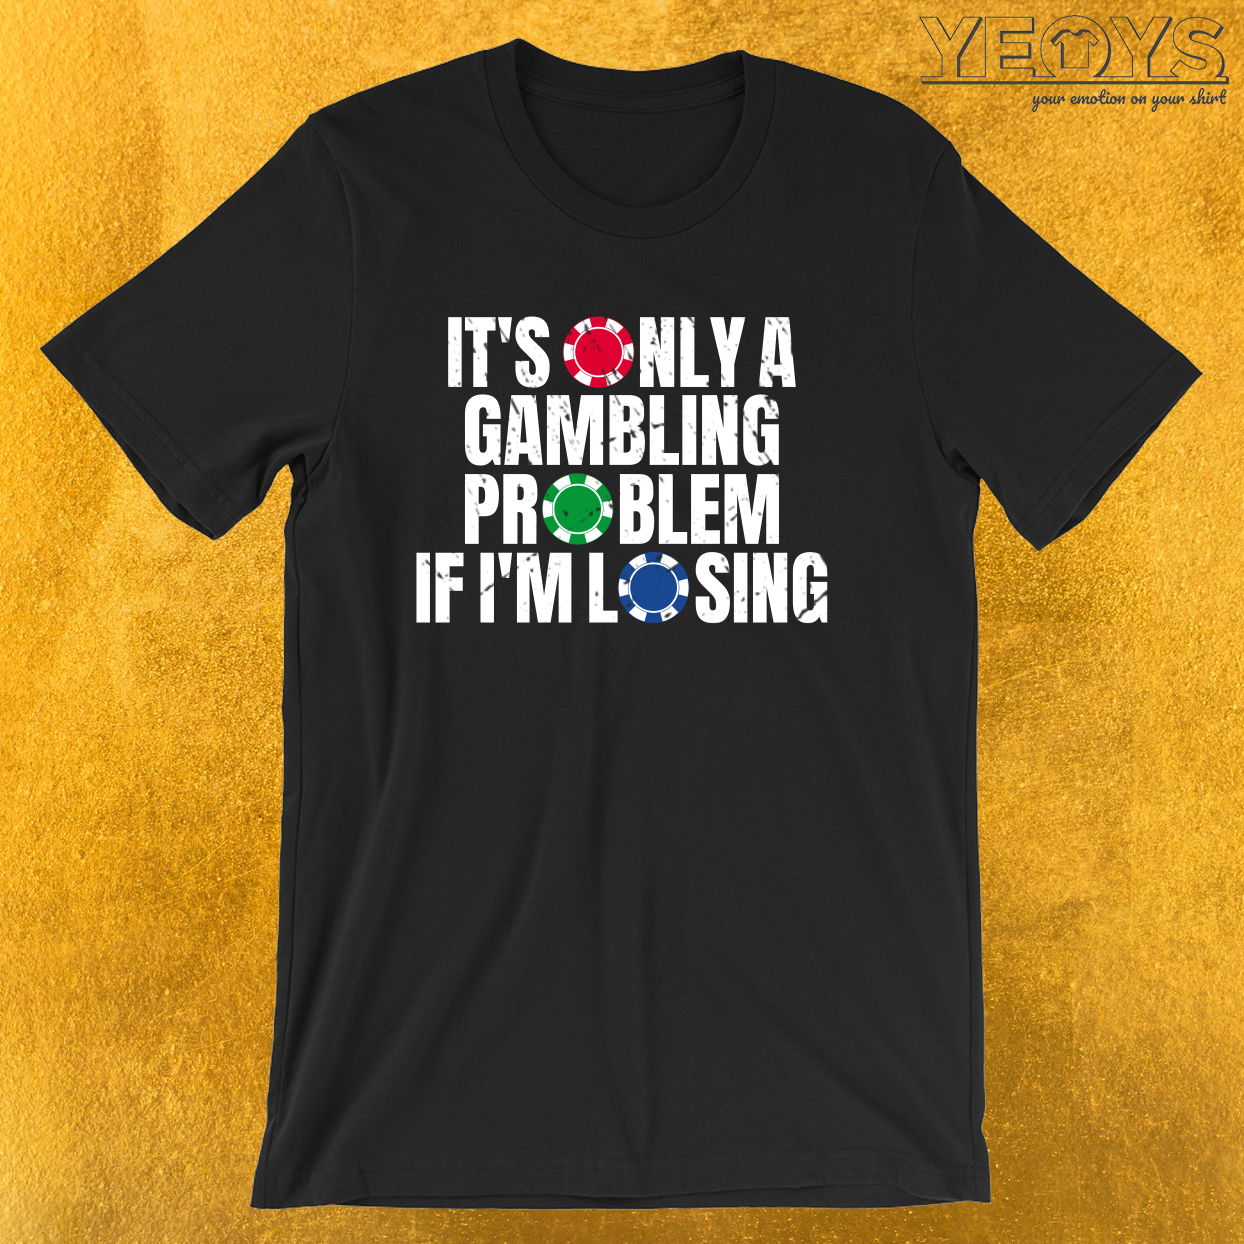 It's Only A Gambling Problem If I'm Losing – Gambling Problem Tee